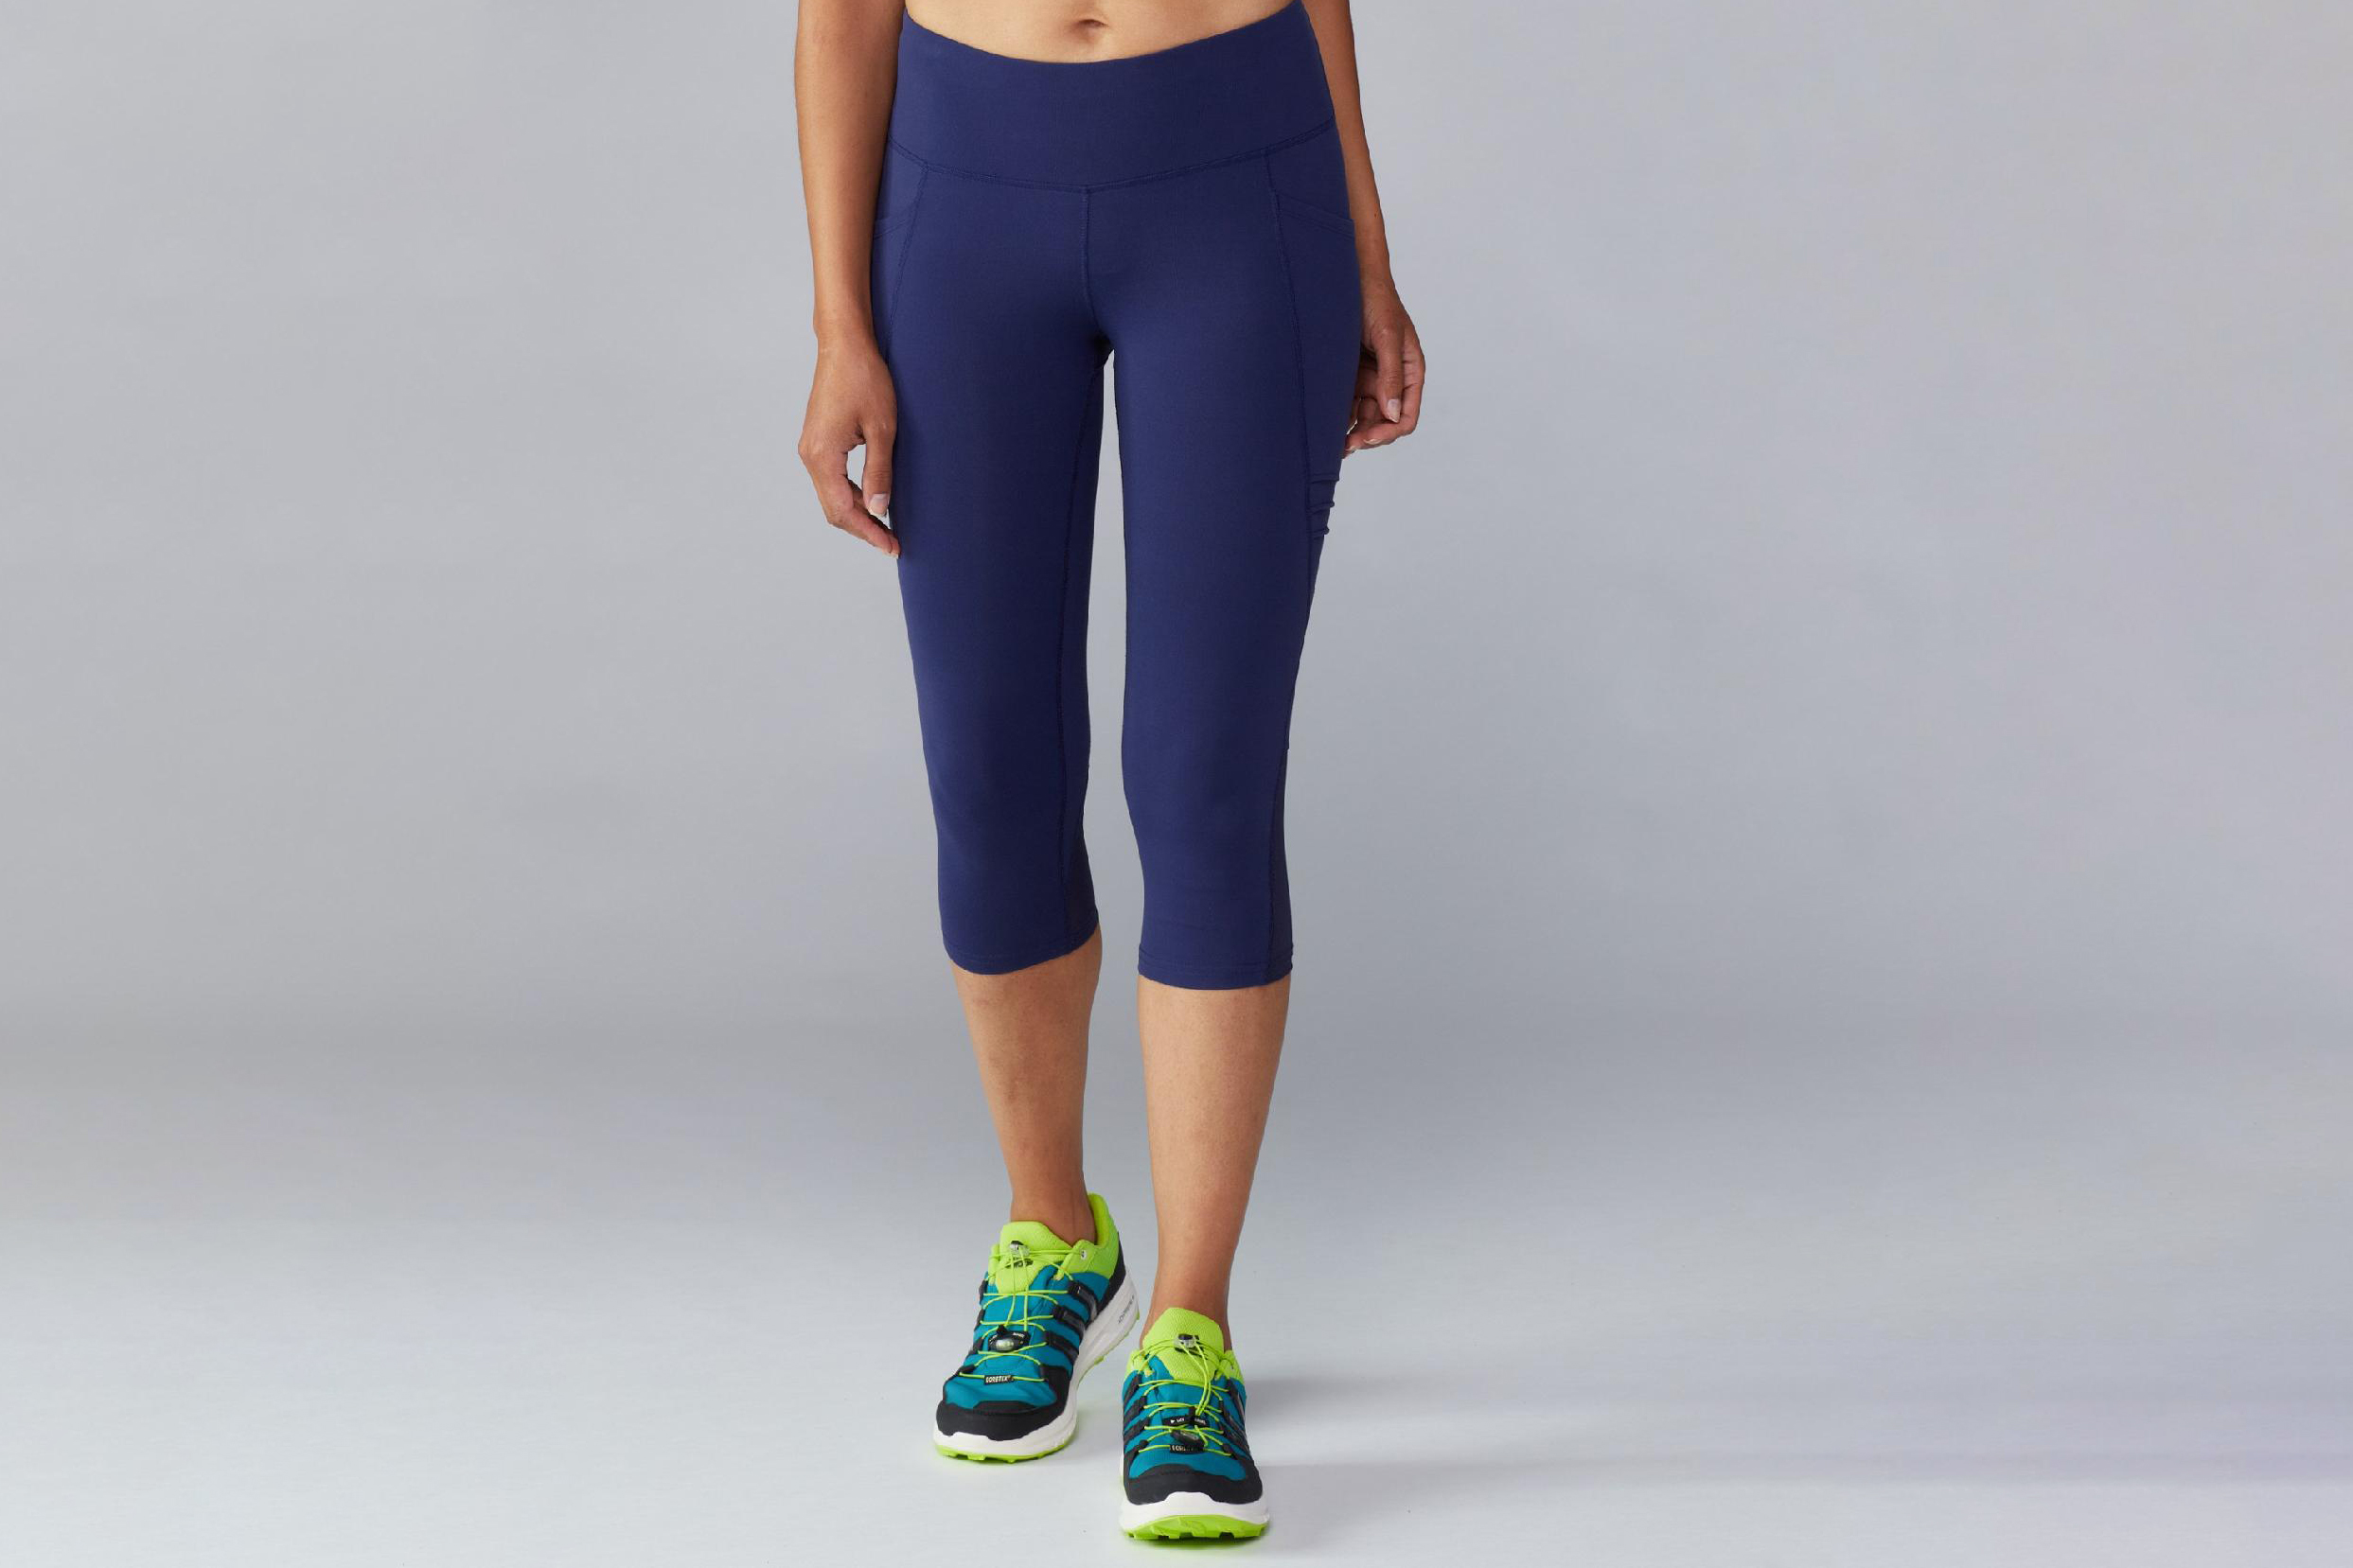 Oiselle Capri Tights